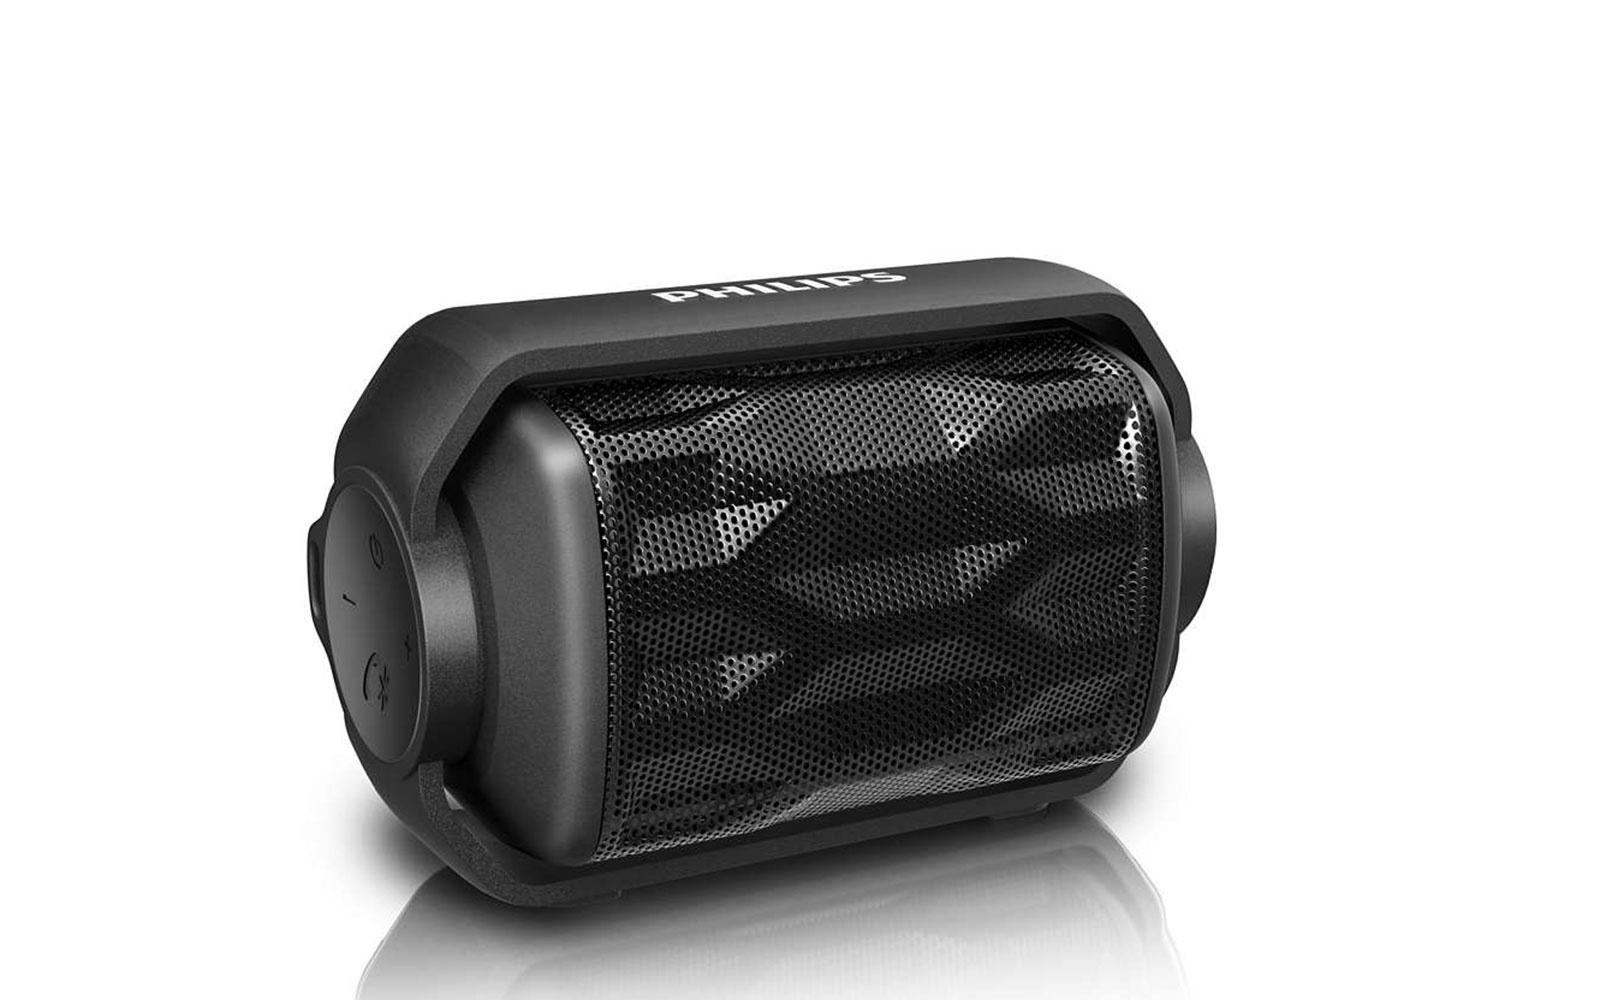 Philips Shoqbox Mini portable bluetooth speaker